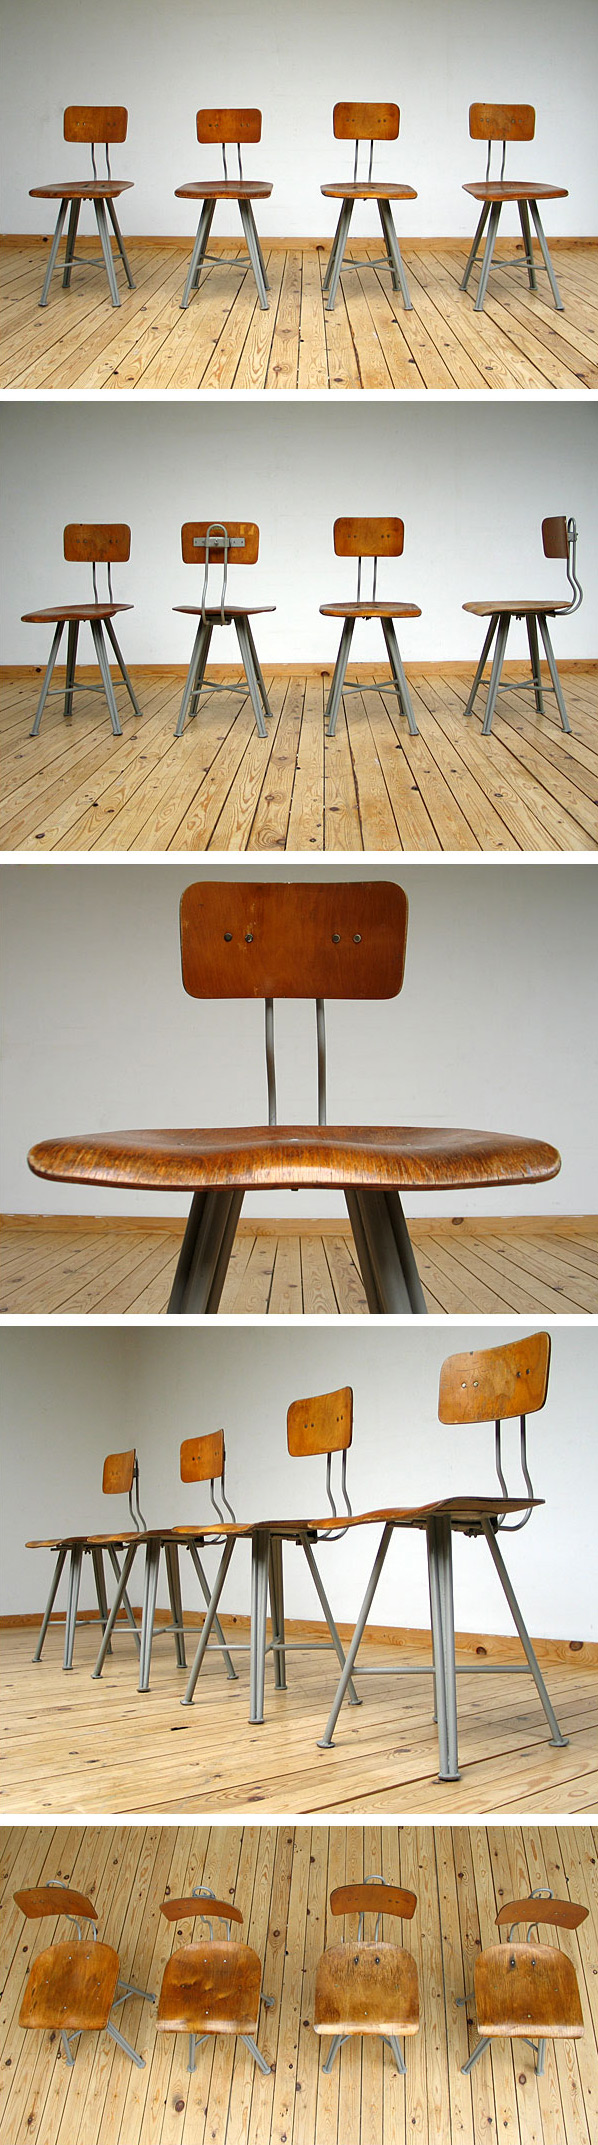 4 industrial architect chairs with plywood seats Large